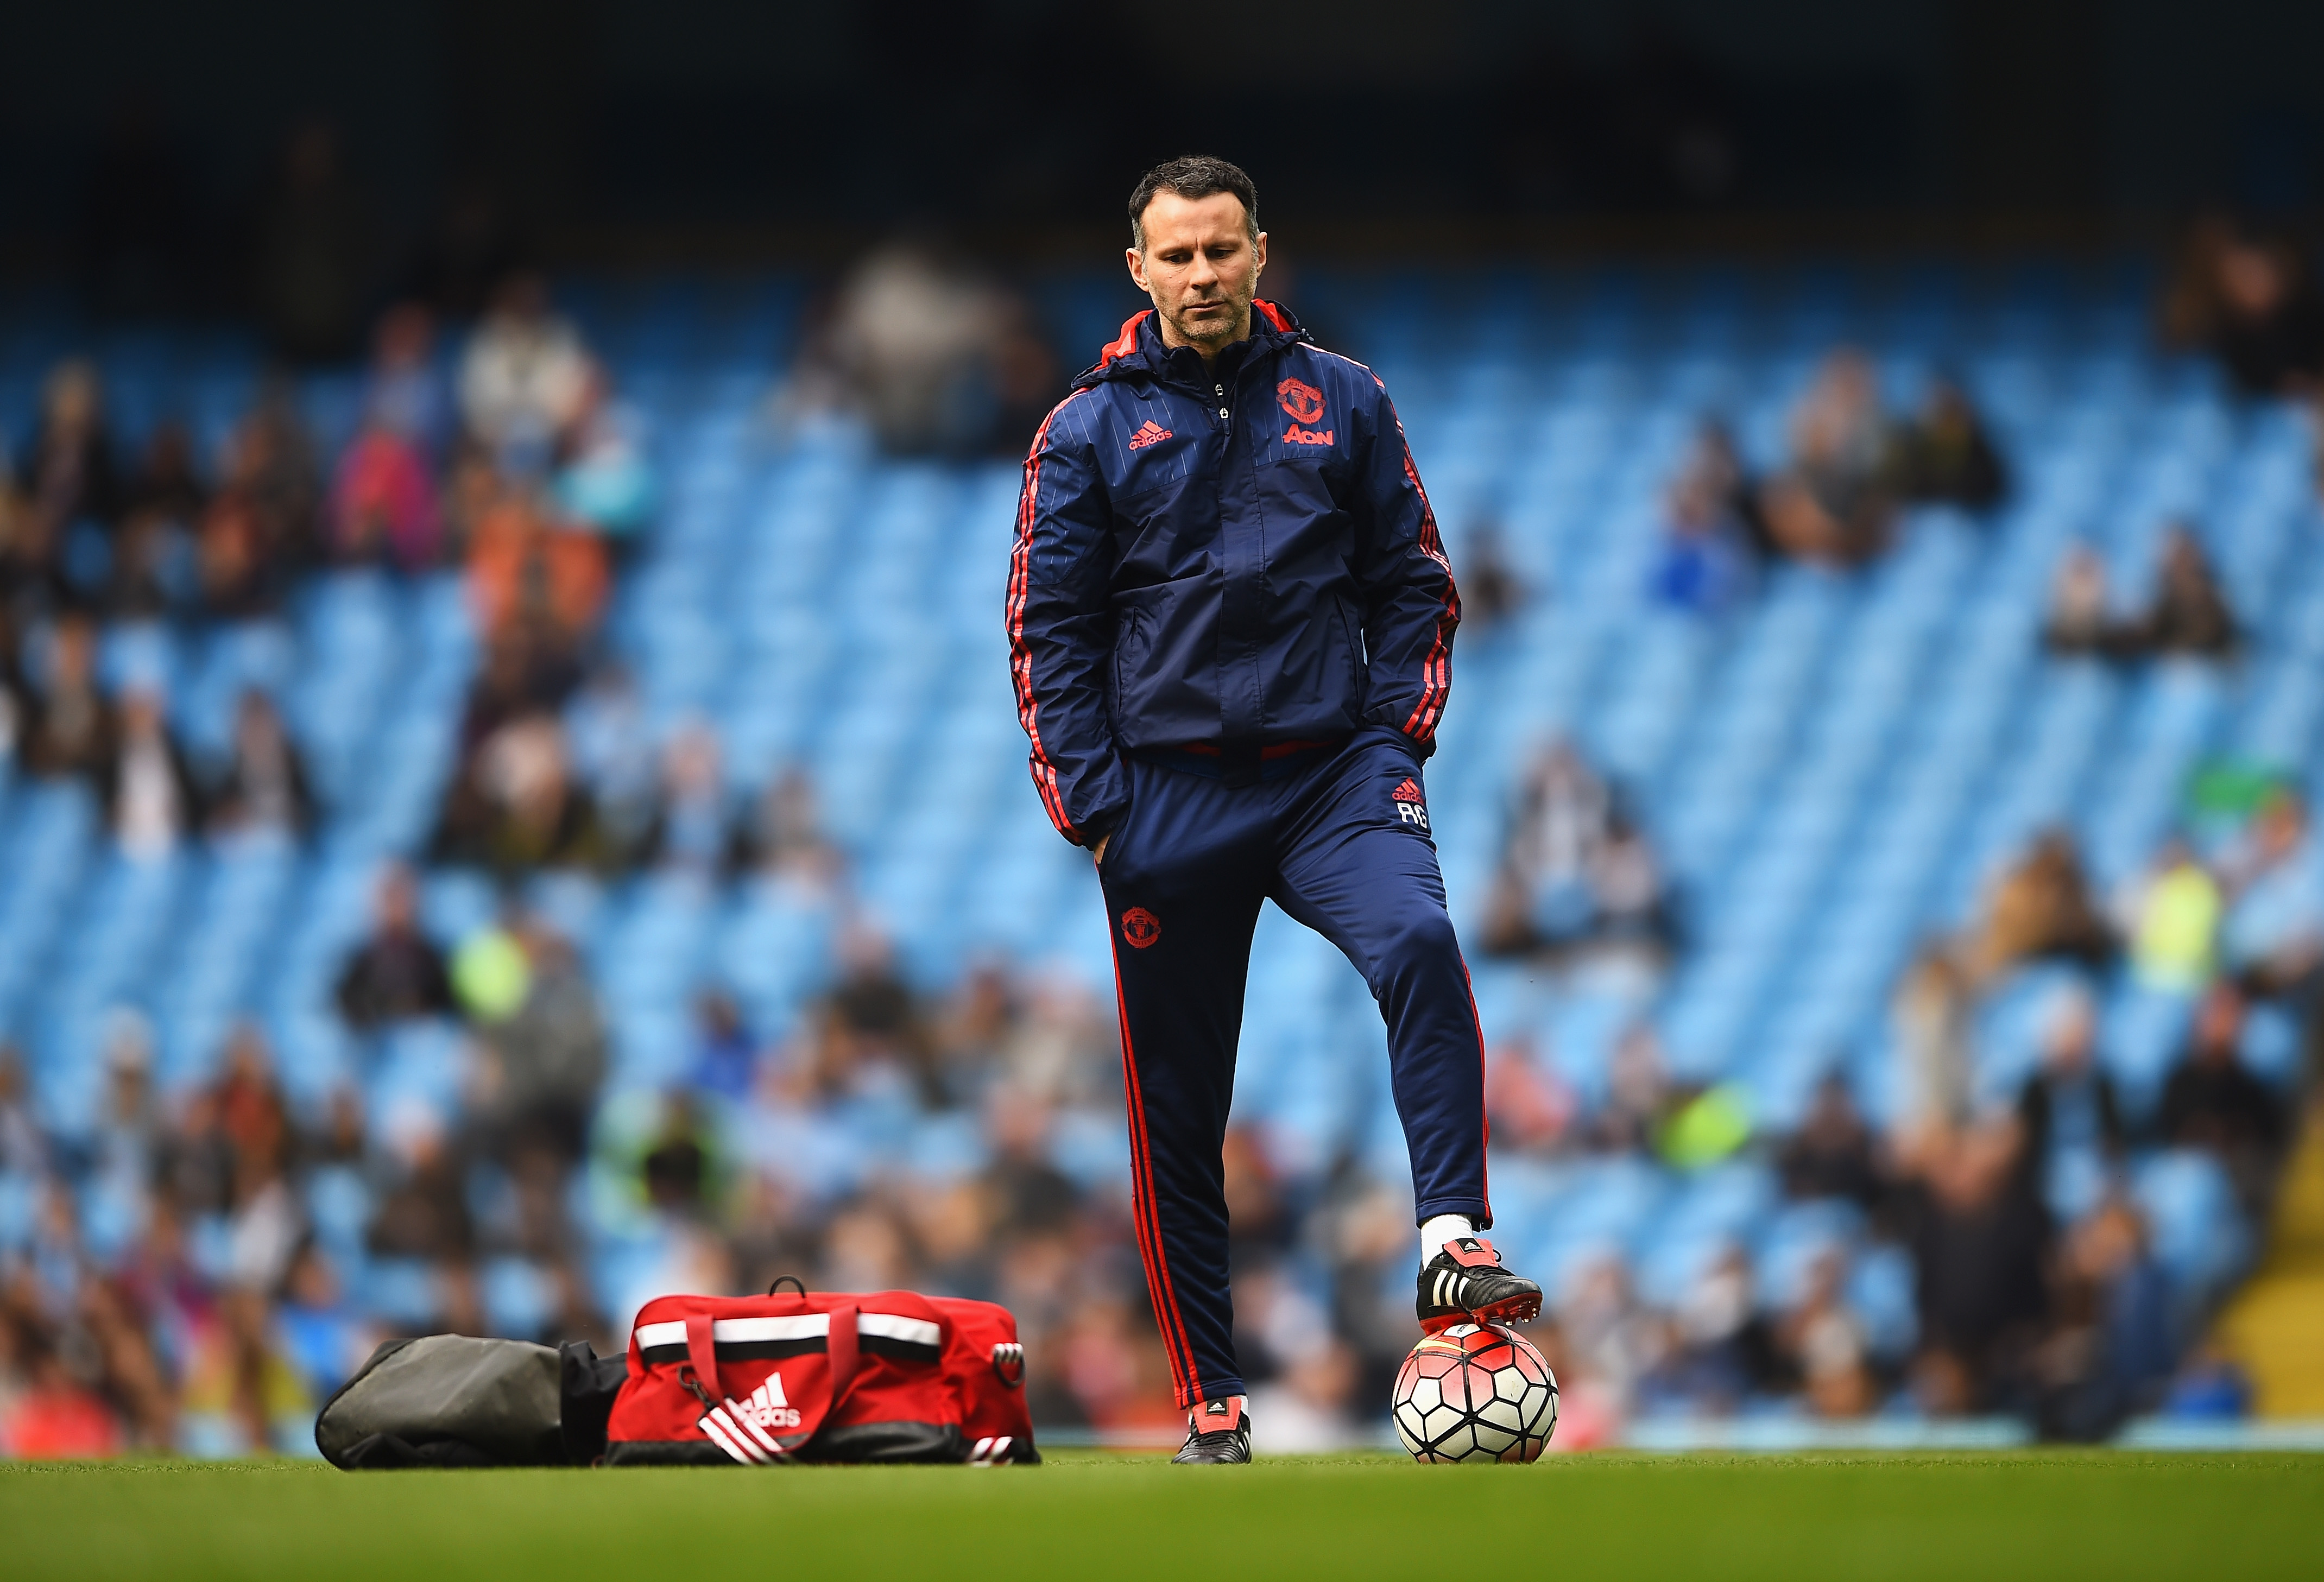 Manchester United decline after Sir Alex Ferguson departure was NOT inevitable claims Ryan Giggs